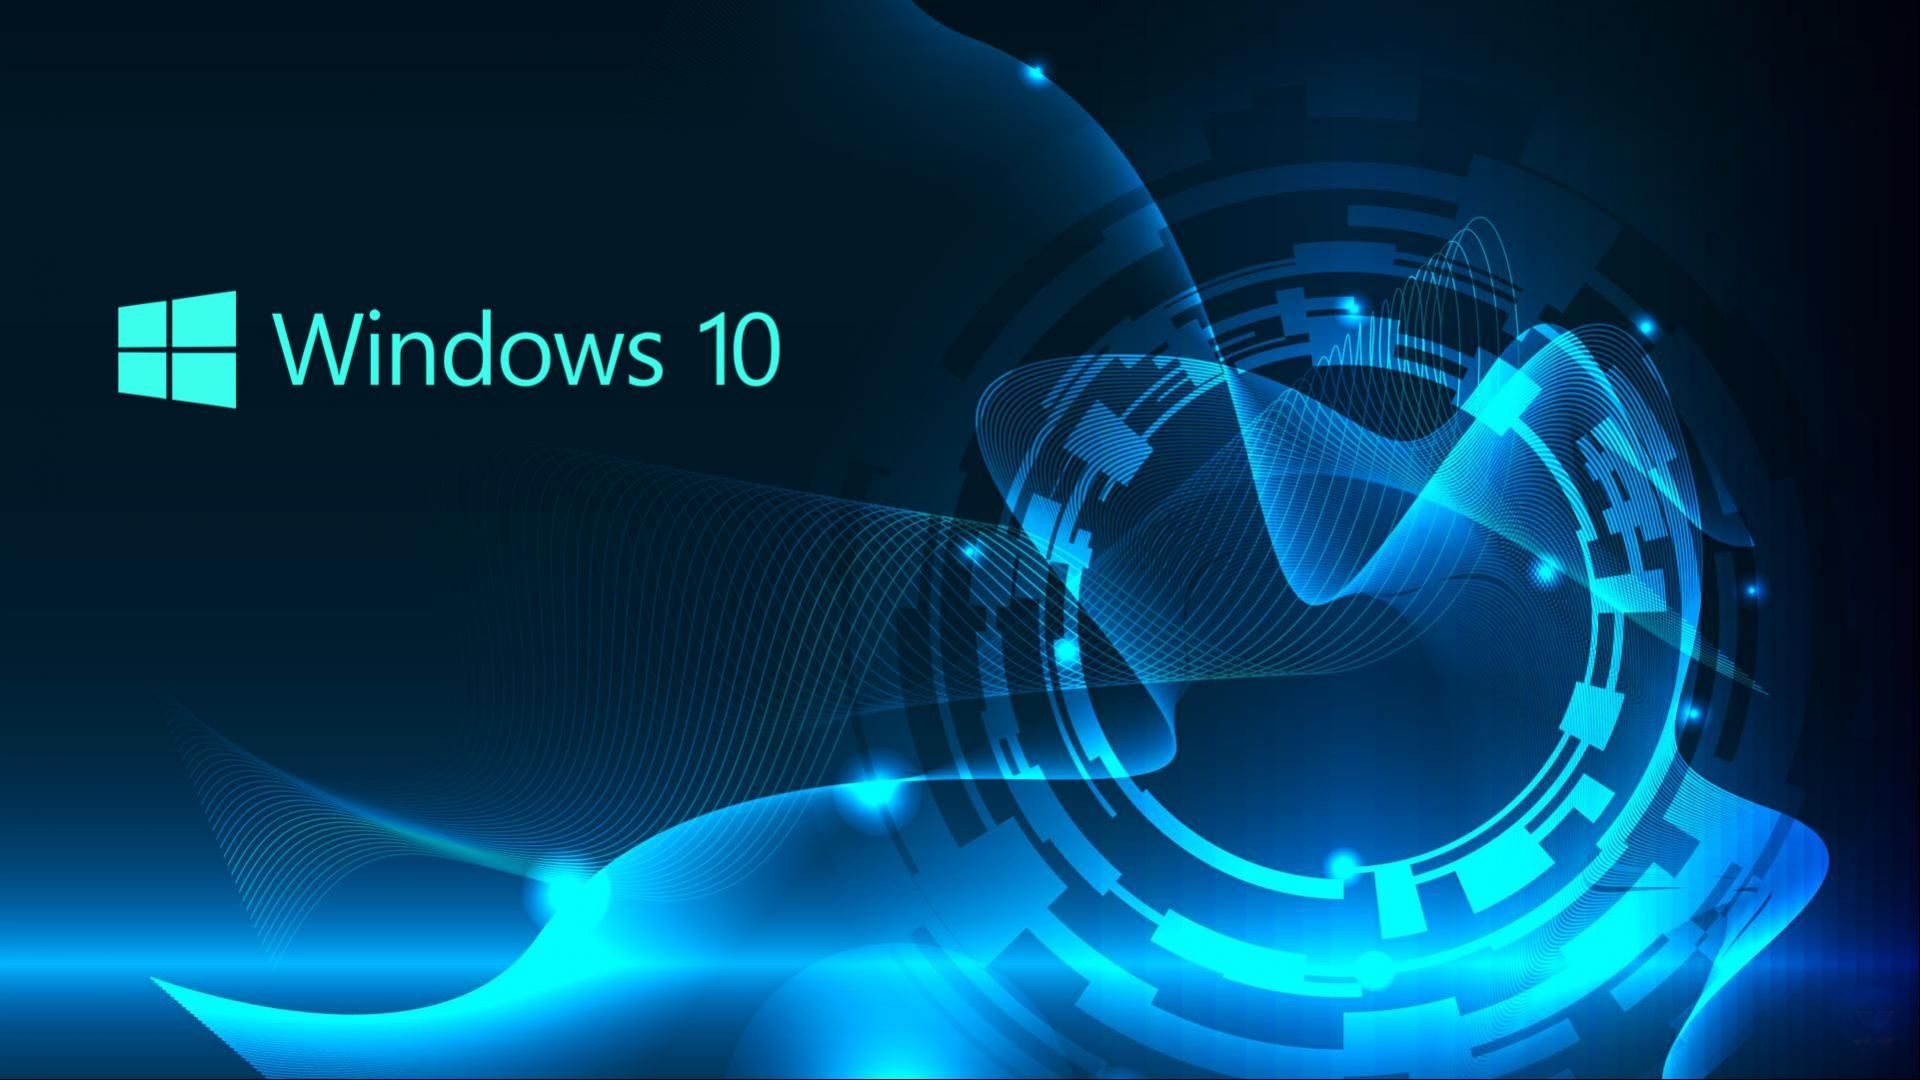 Windows 10 Wallpaper Hd 1080p Free Hd Imagenes De Windows 10 1366x768 Wallpaper Hd Fondos De Pantalla Hd Para Iphone